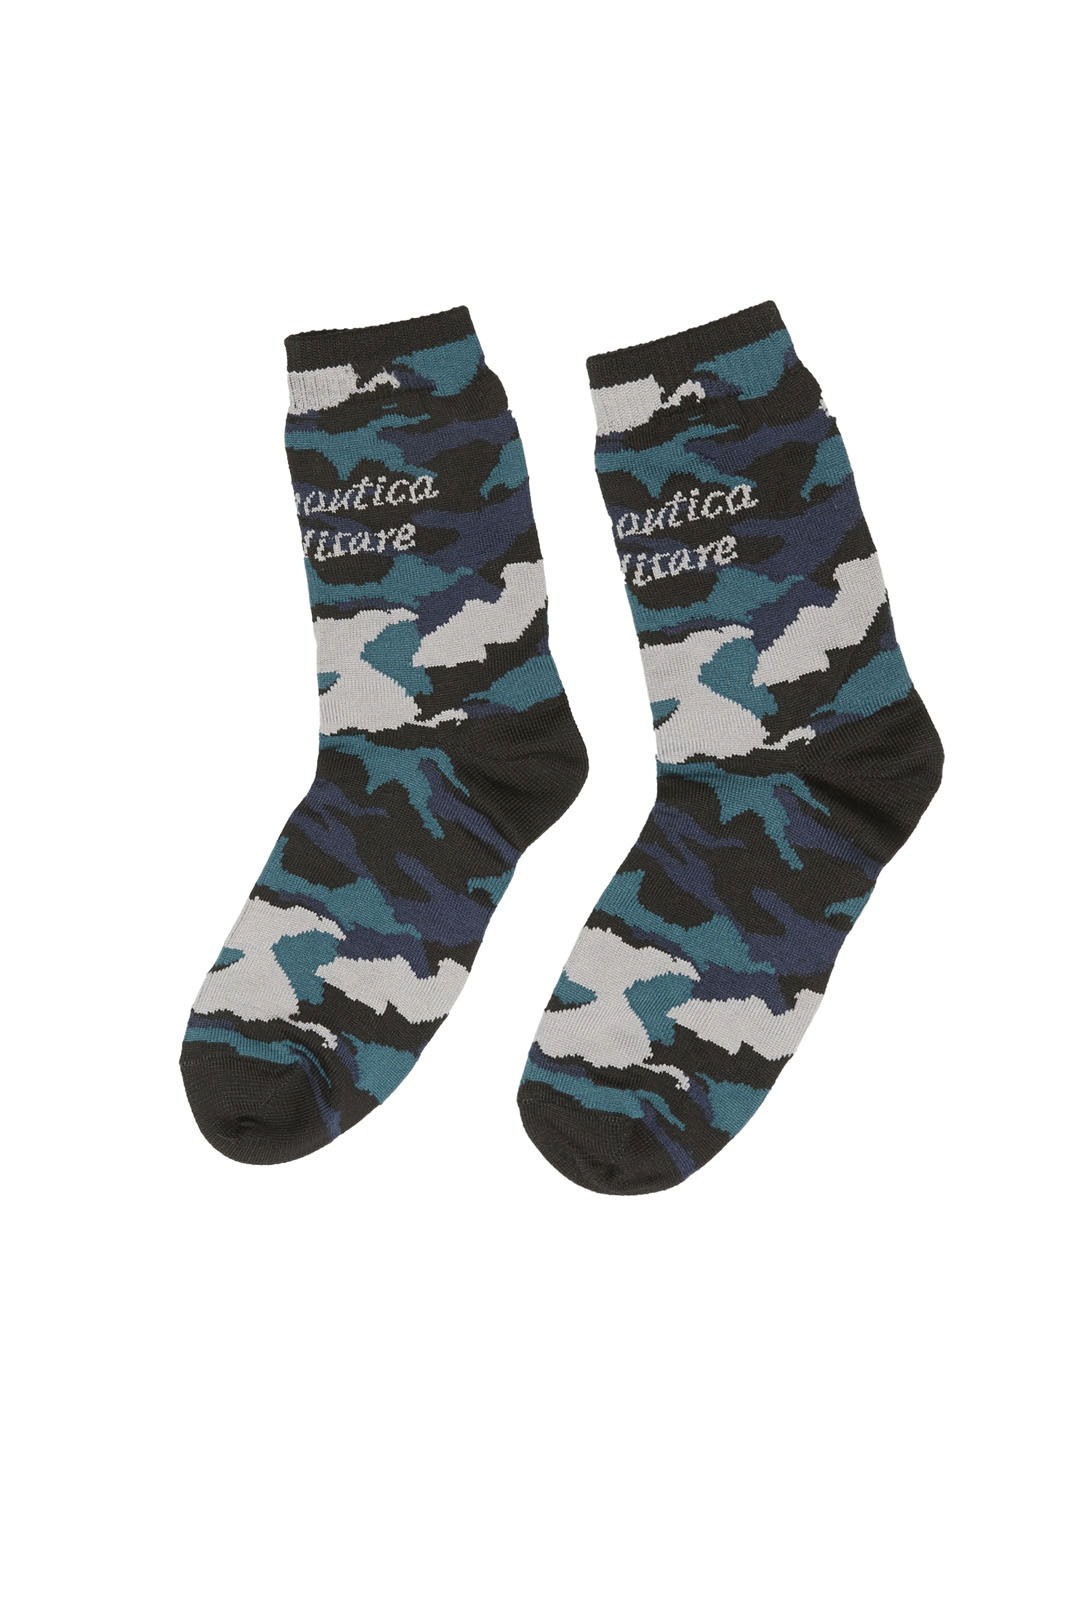 Women's socks with camouflage pattern    1